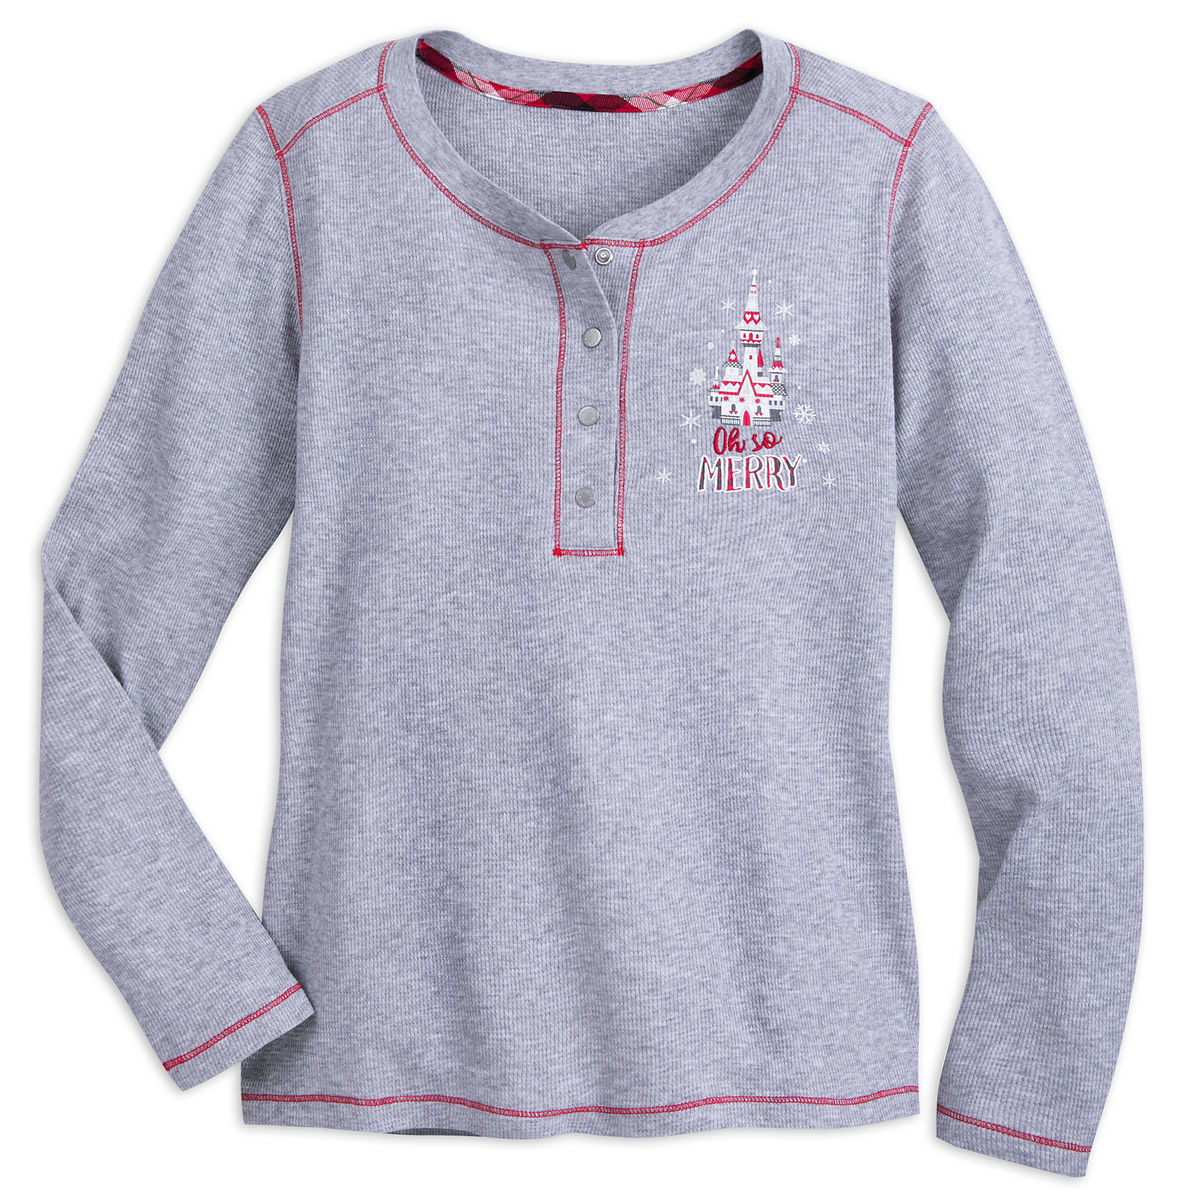 Disney Sleep Shirt for Women - Fantasyland Castle Holiday Thermal